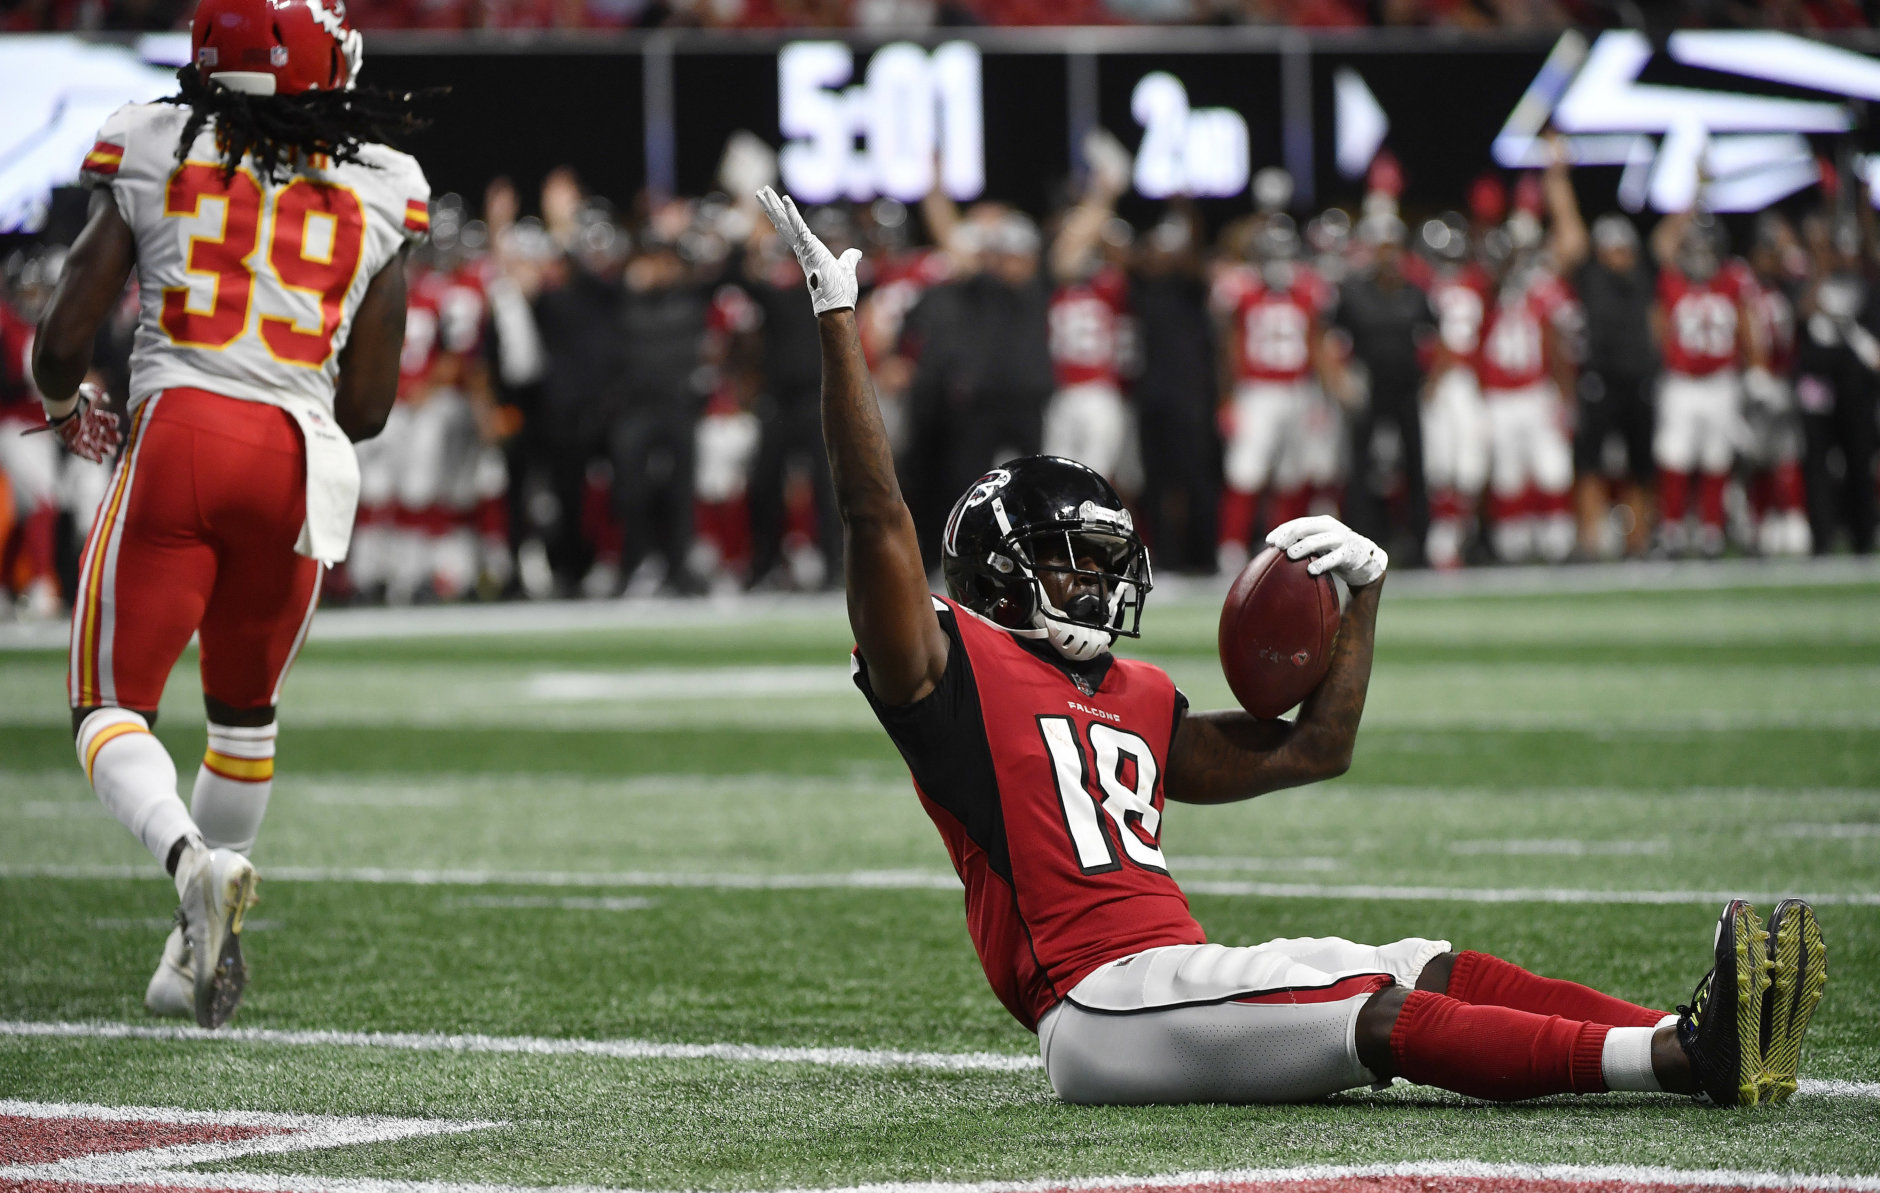 Atlanta Falcons wide receiver Calvin Ridley (18) celebrates his touchdown catch against the Kansas City Chiefs during the first half of an NFL preseason football game, Friday, Aug. 17, 2018, in Atlanta. (AP Photo/John Amis)